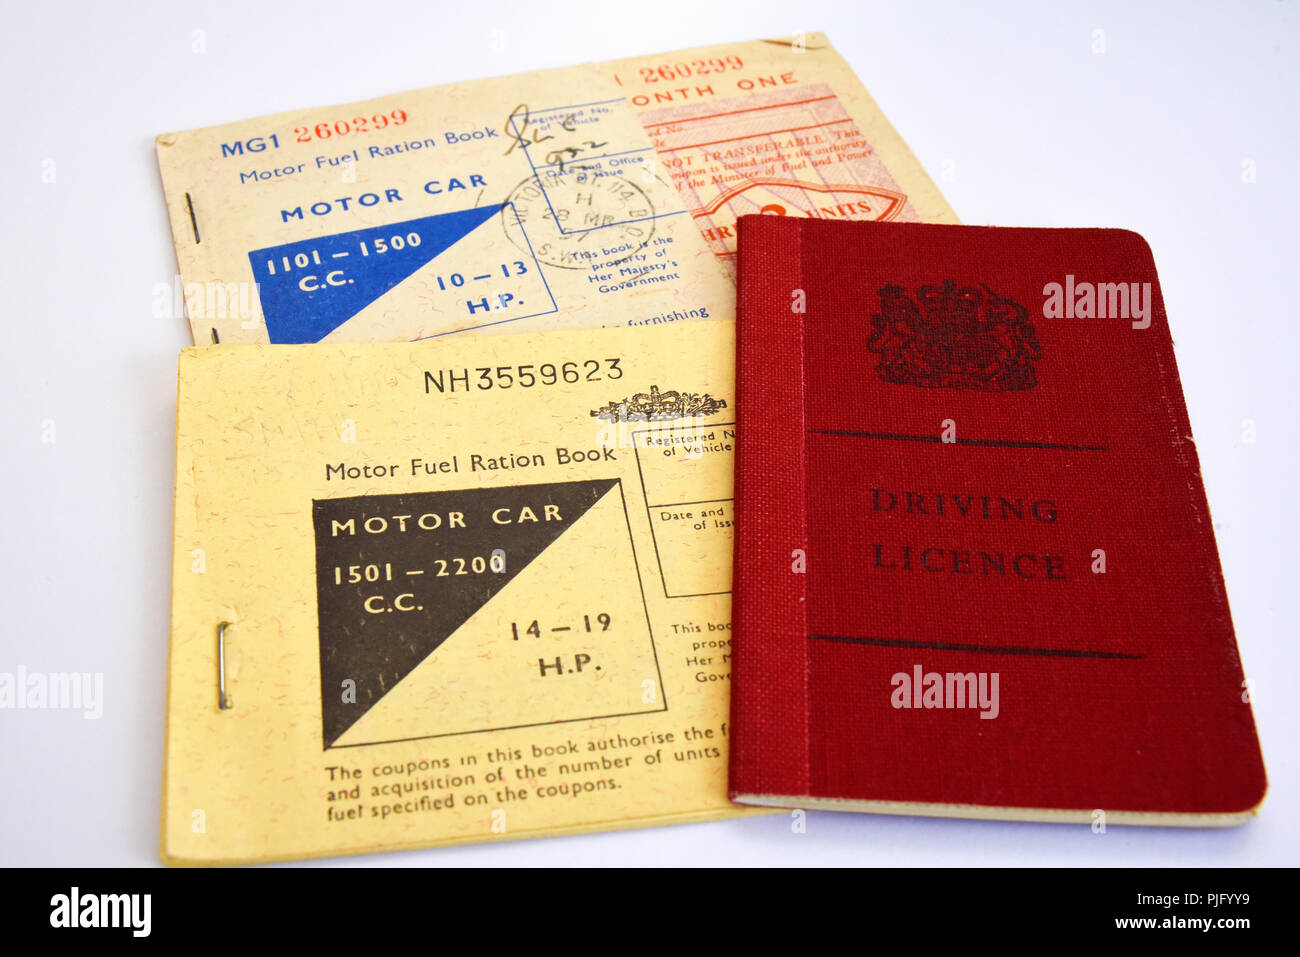 Motor fuel ration book. Petrol rationing. Fuel rations. Coupons for the purchase of motor car fuel, petrol, during post war rationing. Driving license Stock Photo